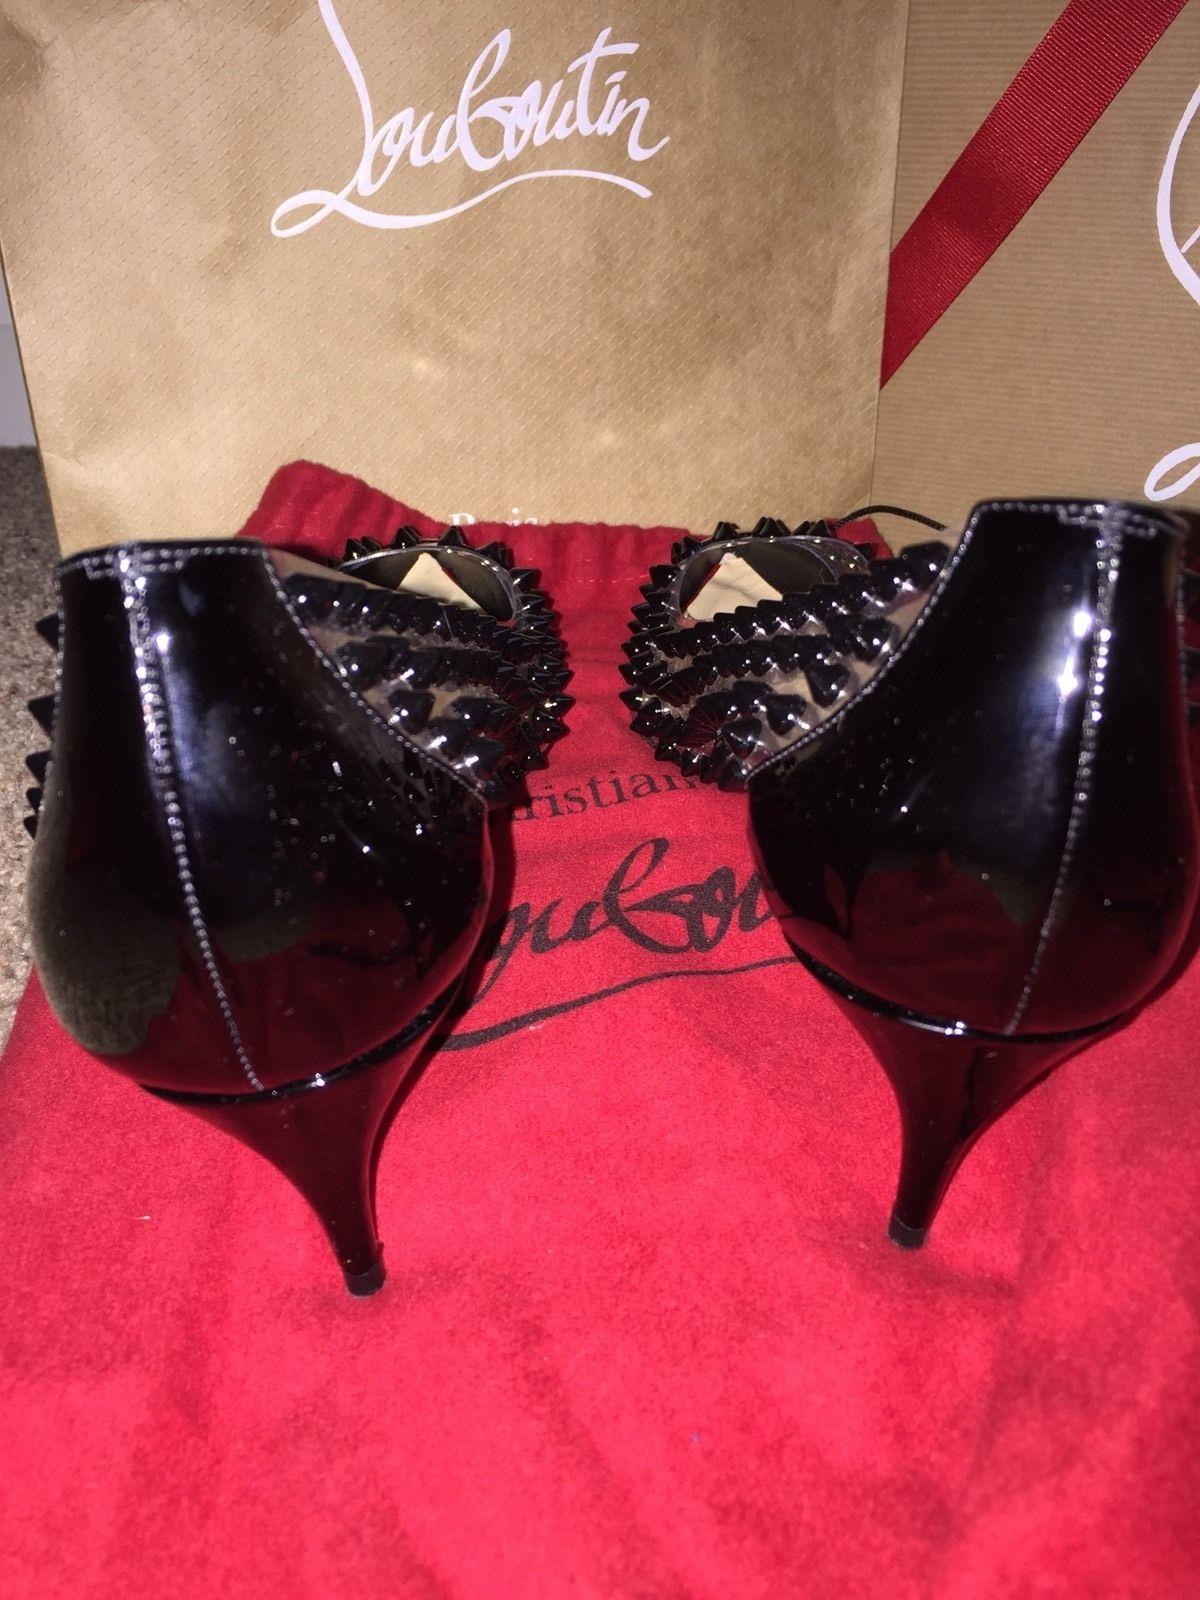 3e0a027e Christian Louboutin Louboutin Louboutin Black Spike Me 45mm Pumps ...